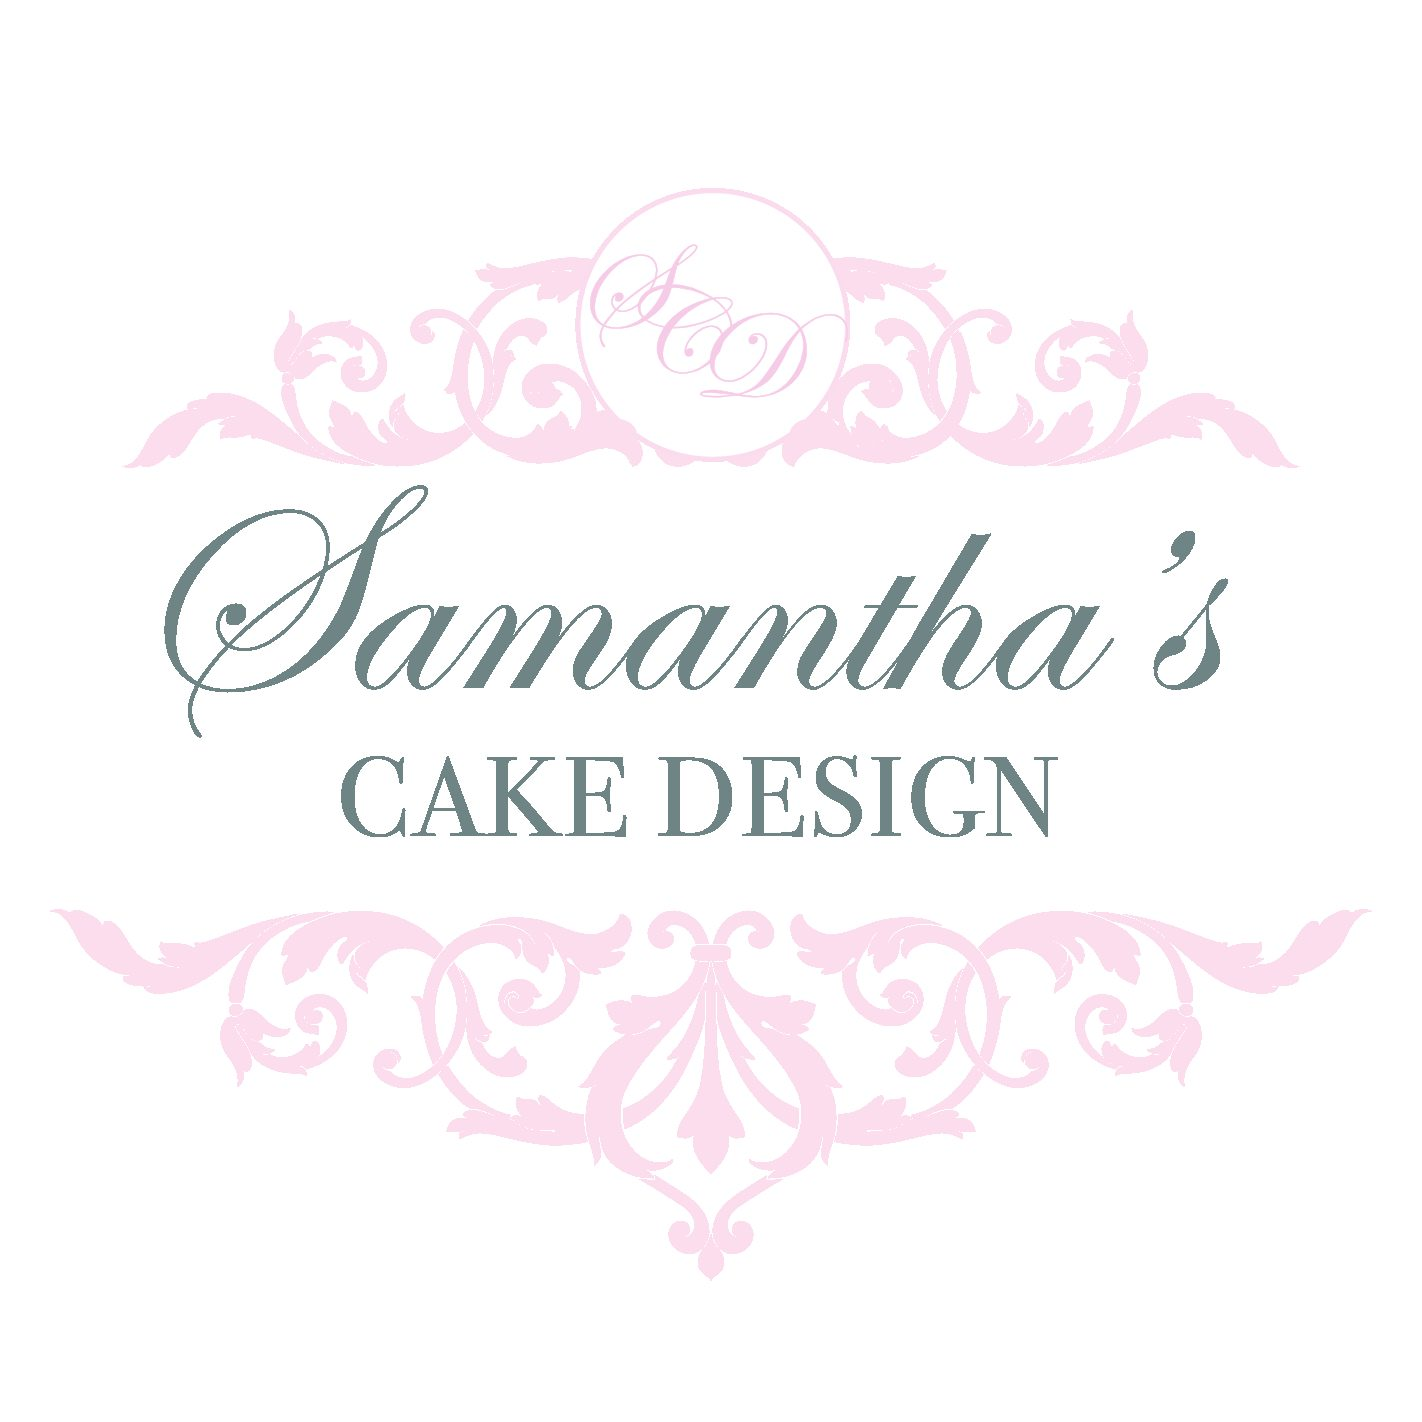 Samantha at Samantha's Cake Design